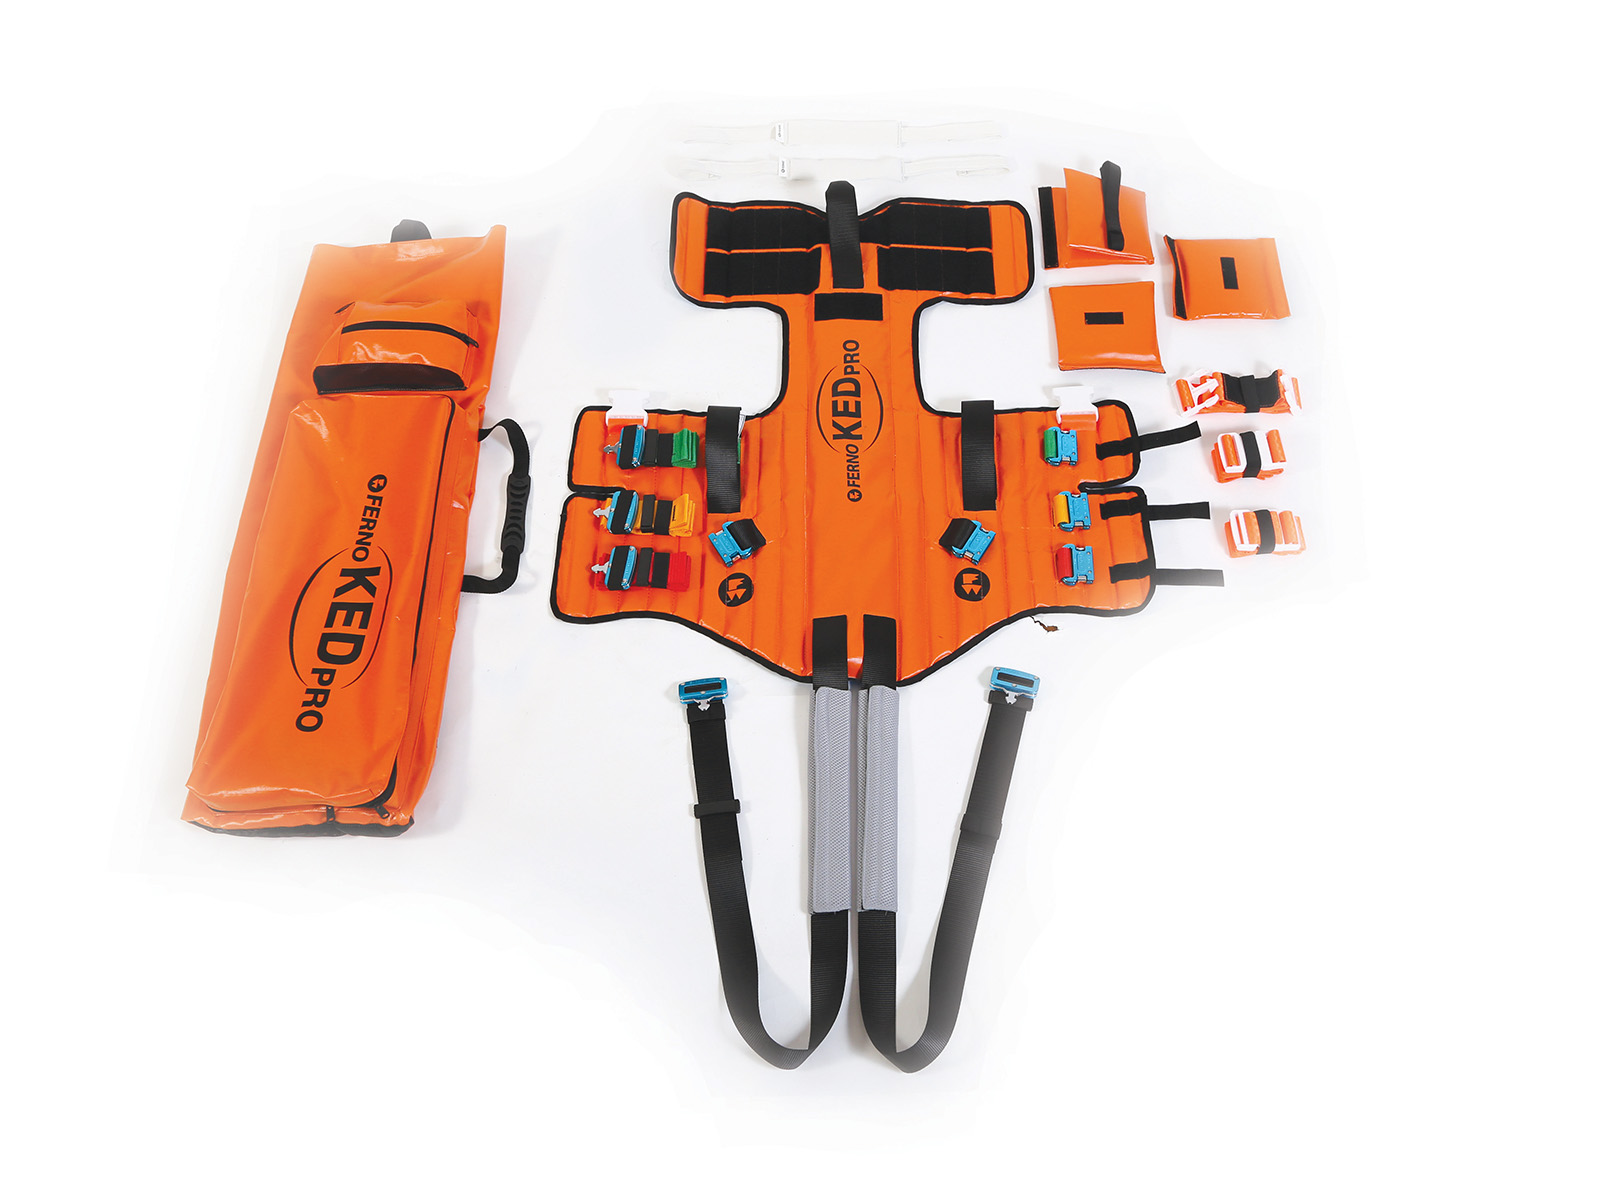 online store 9be21 17665 Ferno - Extrication Devices